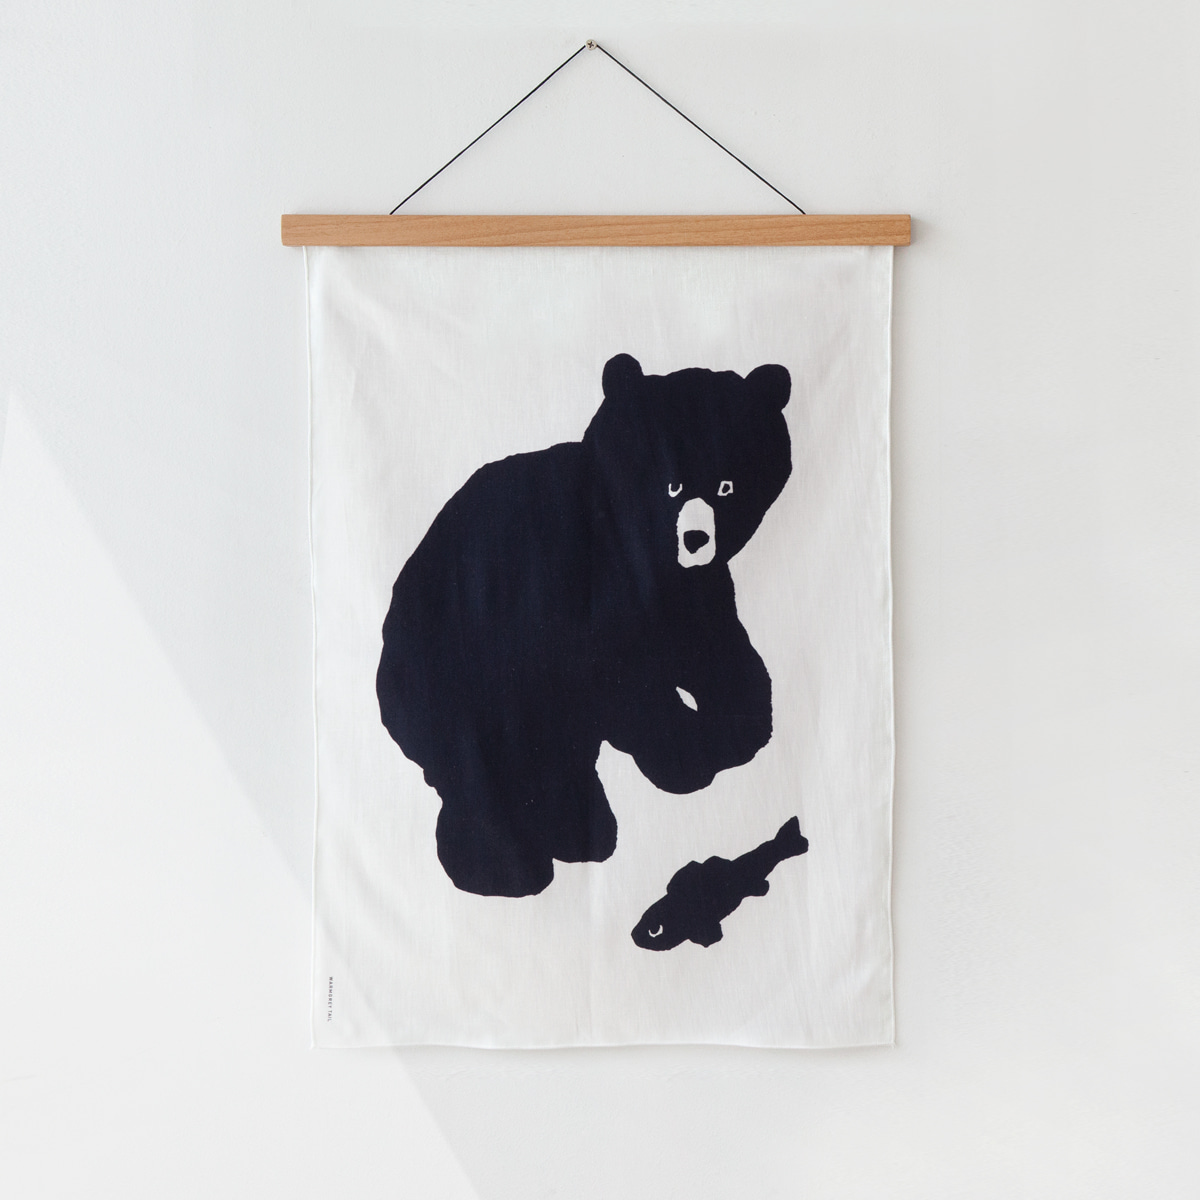 BLACK BEAR FABRIC POSTER - SMALL